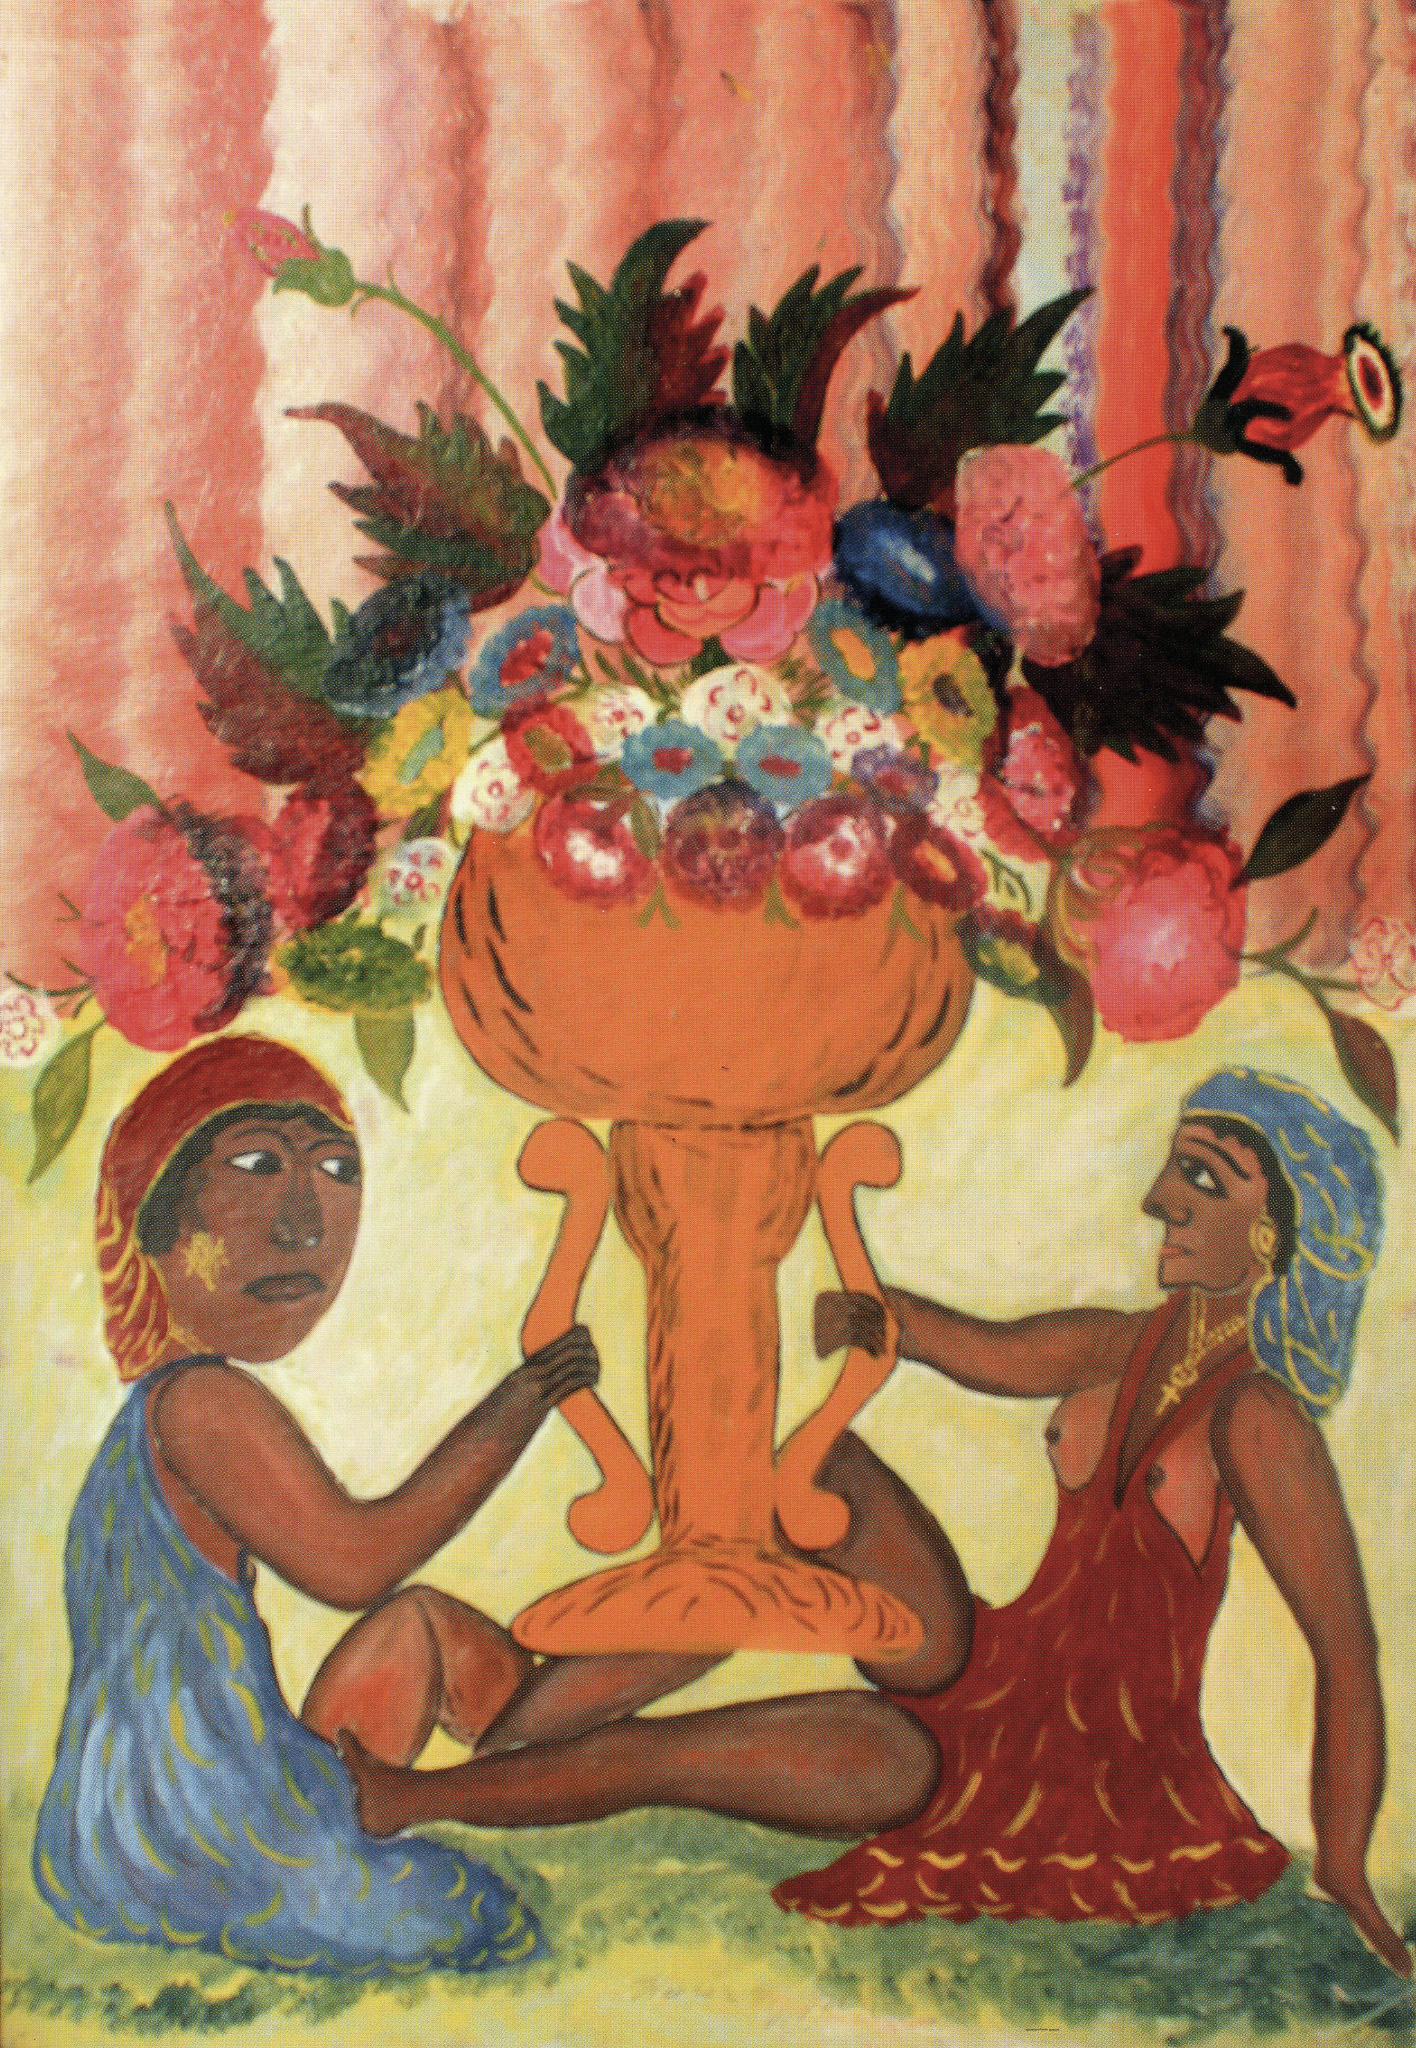 Two Priestesses with Vase, 1945